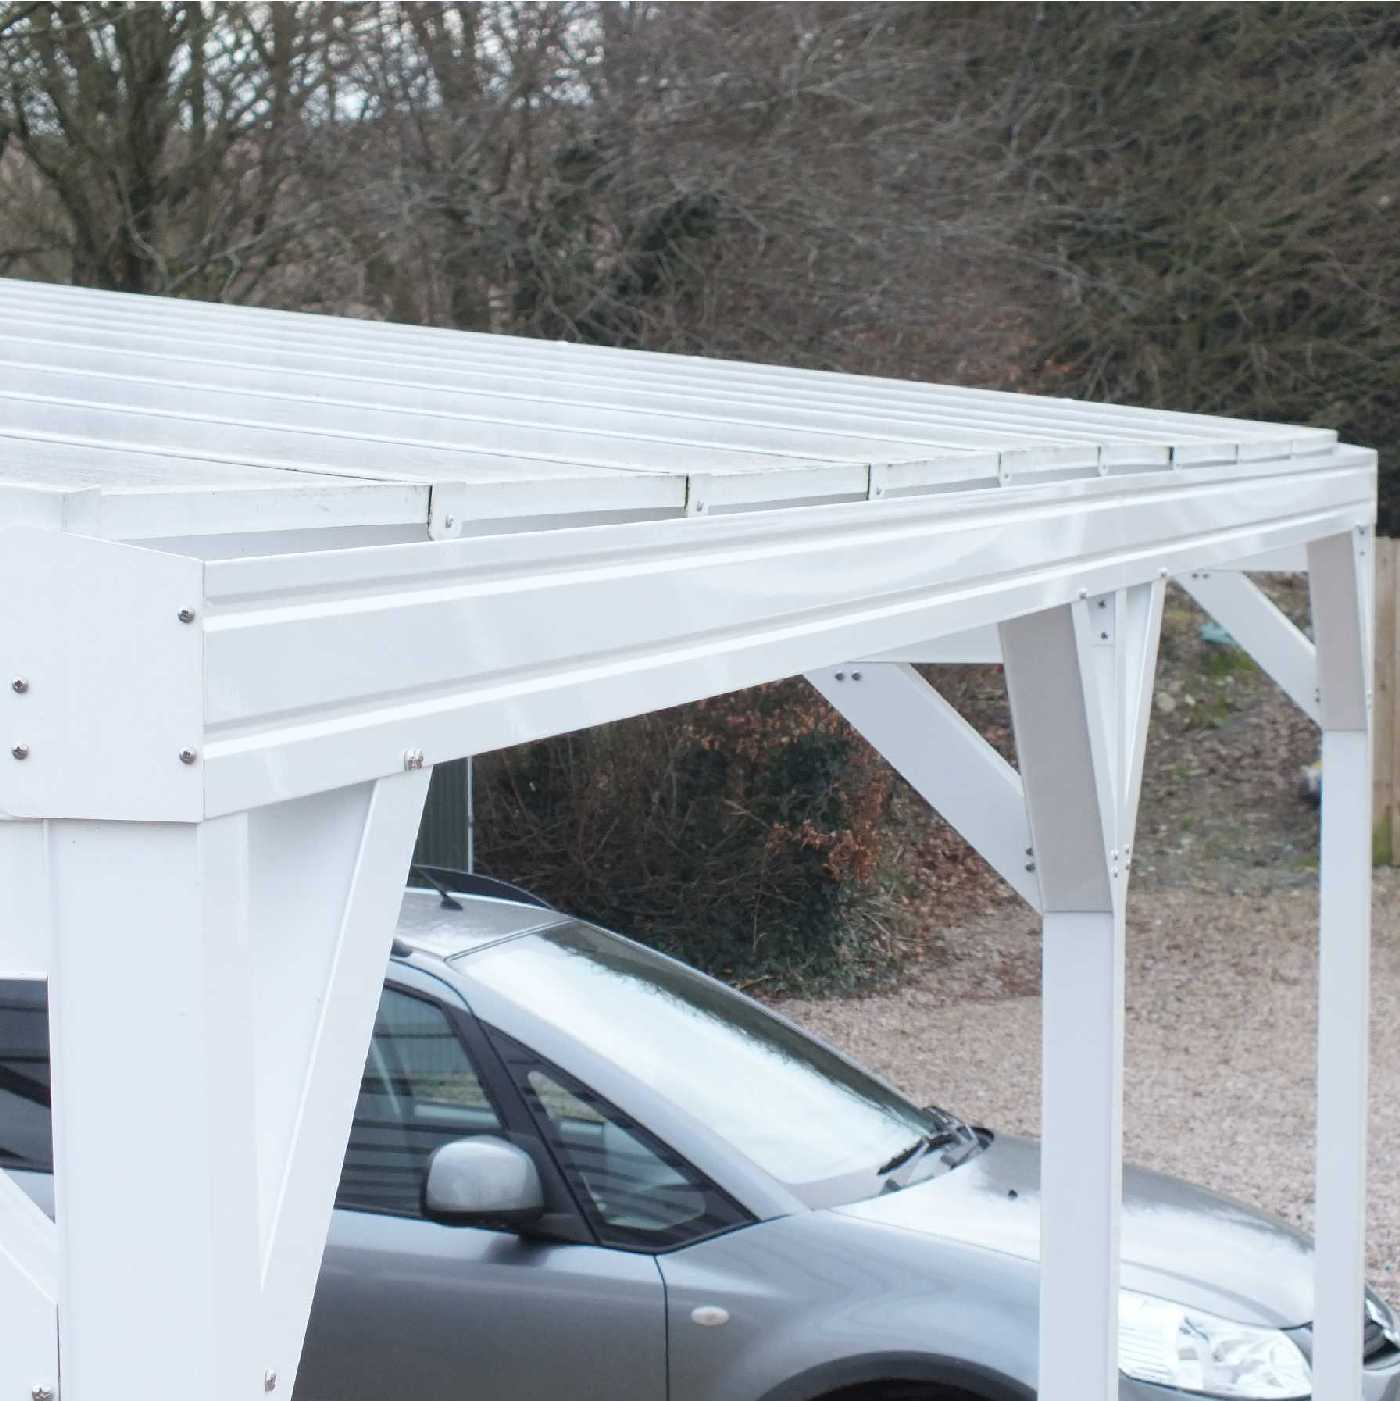 Omega Smart Free-Standing, MonoPitch Roof Canopy with 16mm Polycarbonate Glazing - 4.2m (W) x 3.5m (P), (6) Supporting Posts from Omega Build